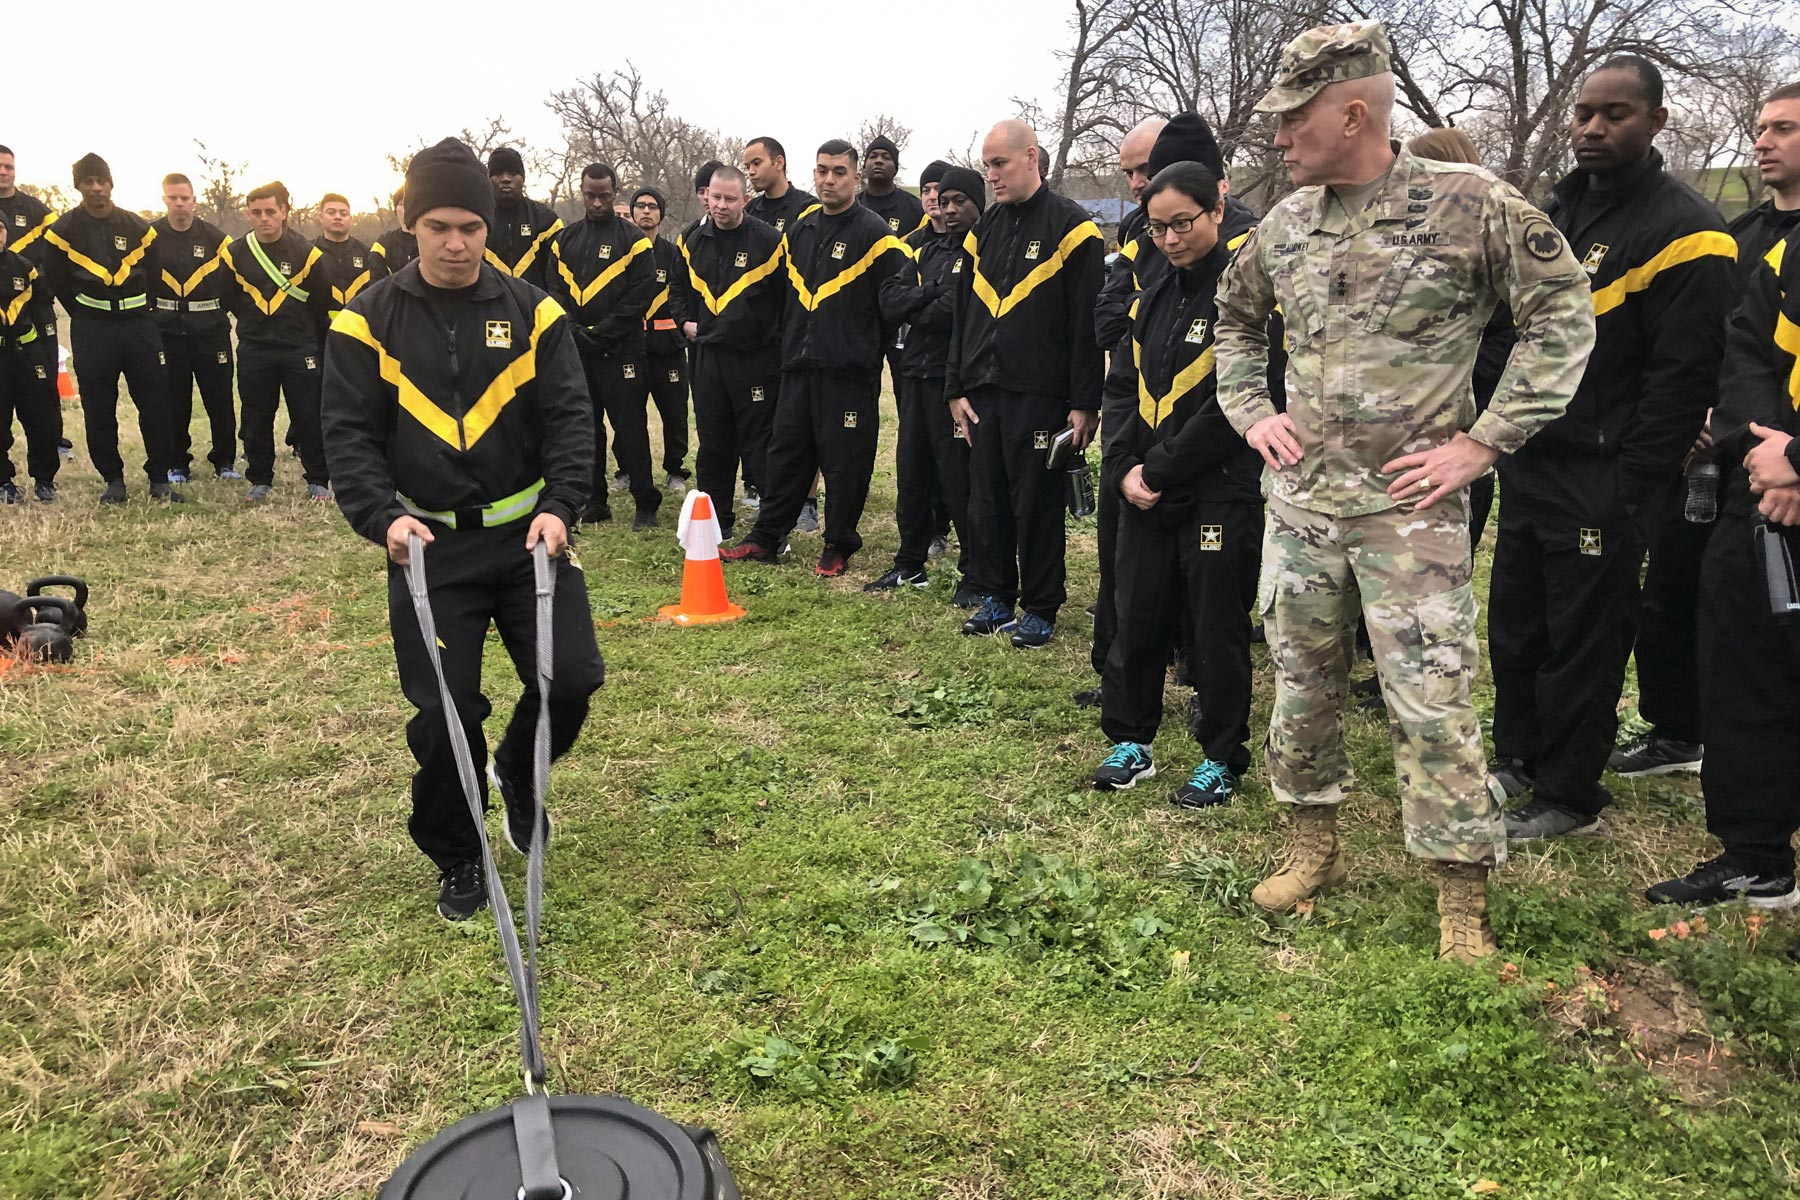 Army 3 Star Reserve May Not Be Ready For New Fitness Test